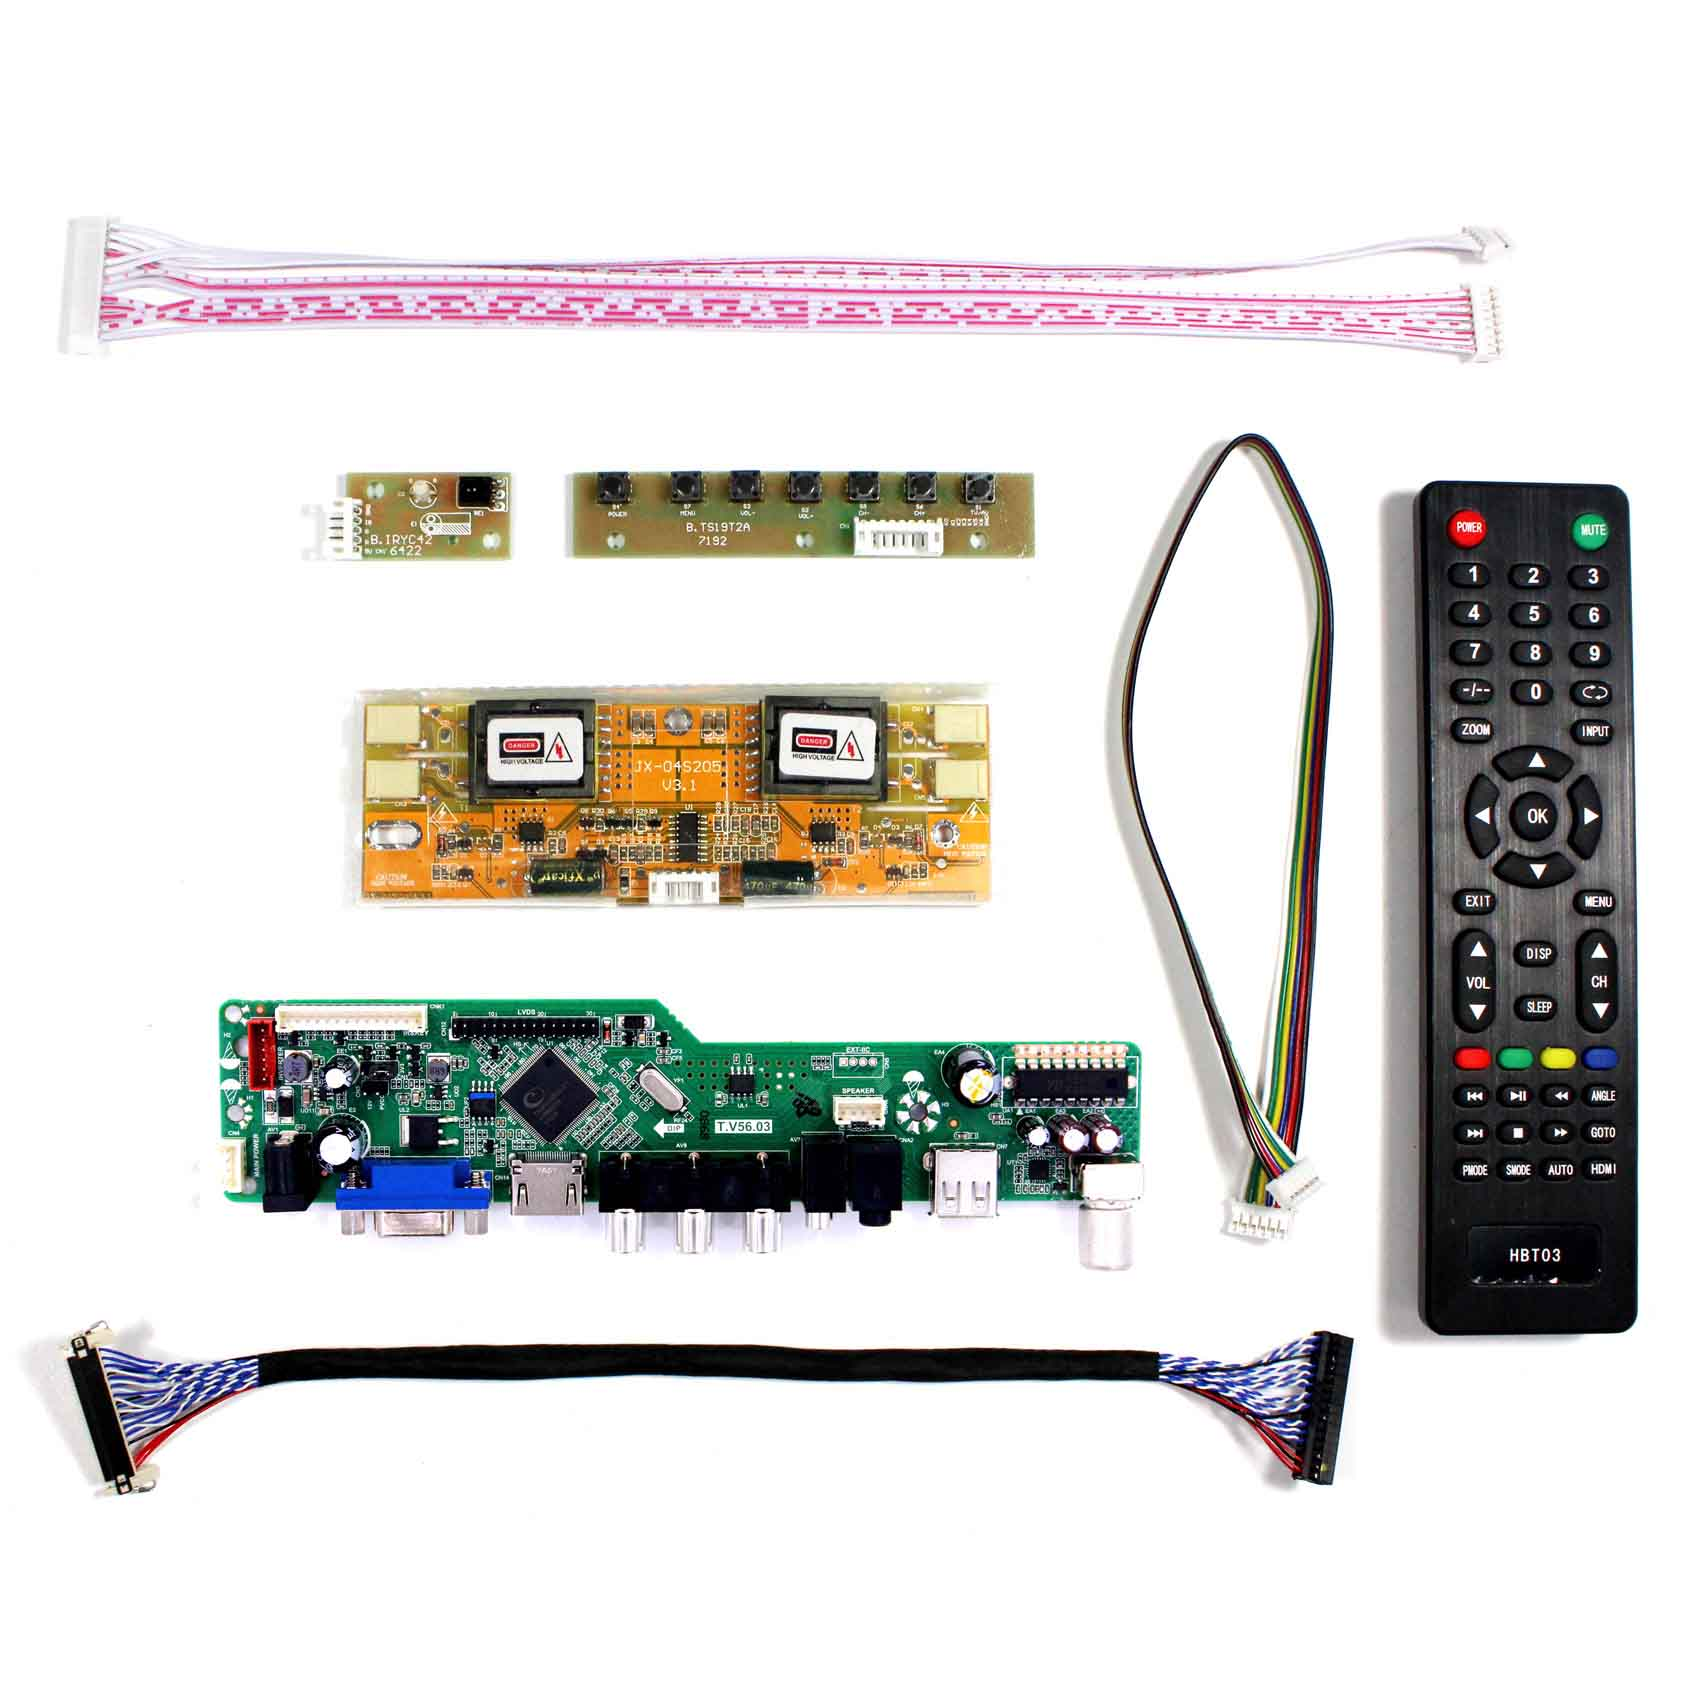 "17"" 19"" 1280x1024 M170EG02 LM190E08 M190E5 G190EG01 LCD Controller Board HDMI Board,Compatible work for Arcade1Up Street Fighter-in Replacement Parts & Accessories from Consumer Electronics    2"